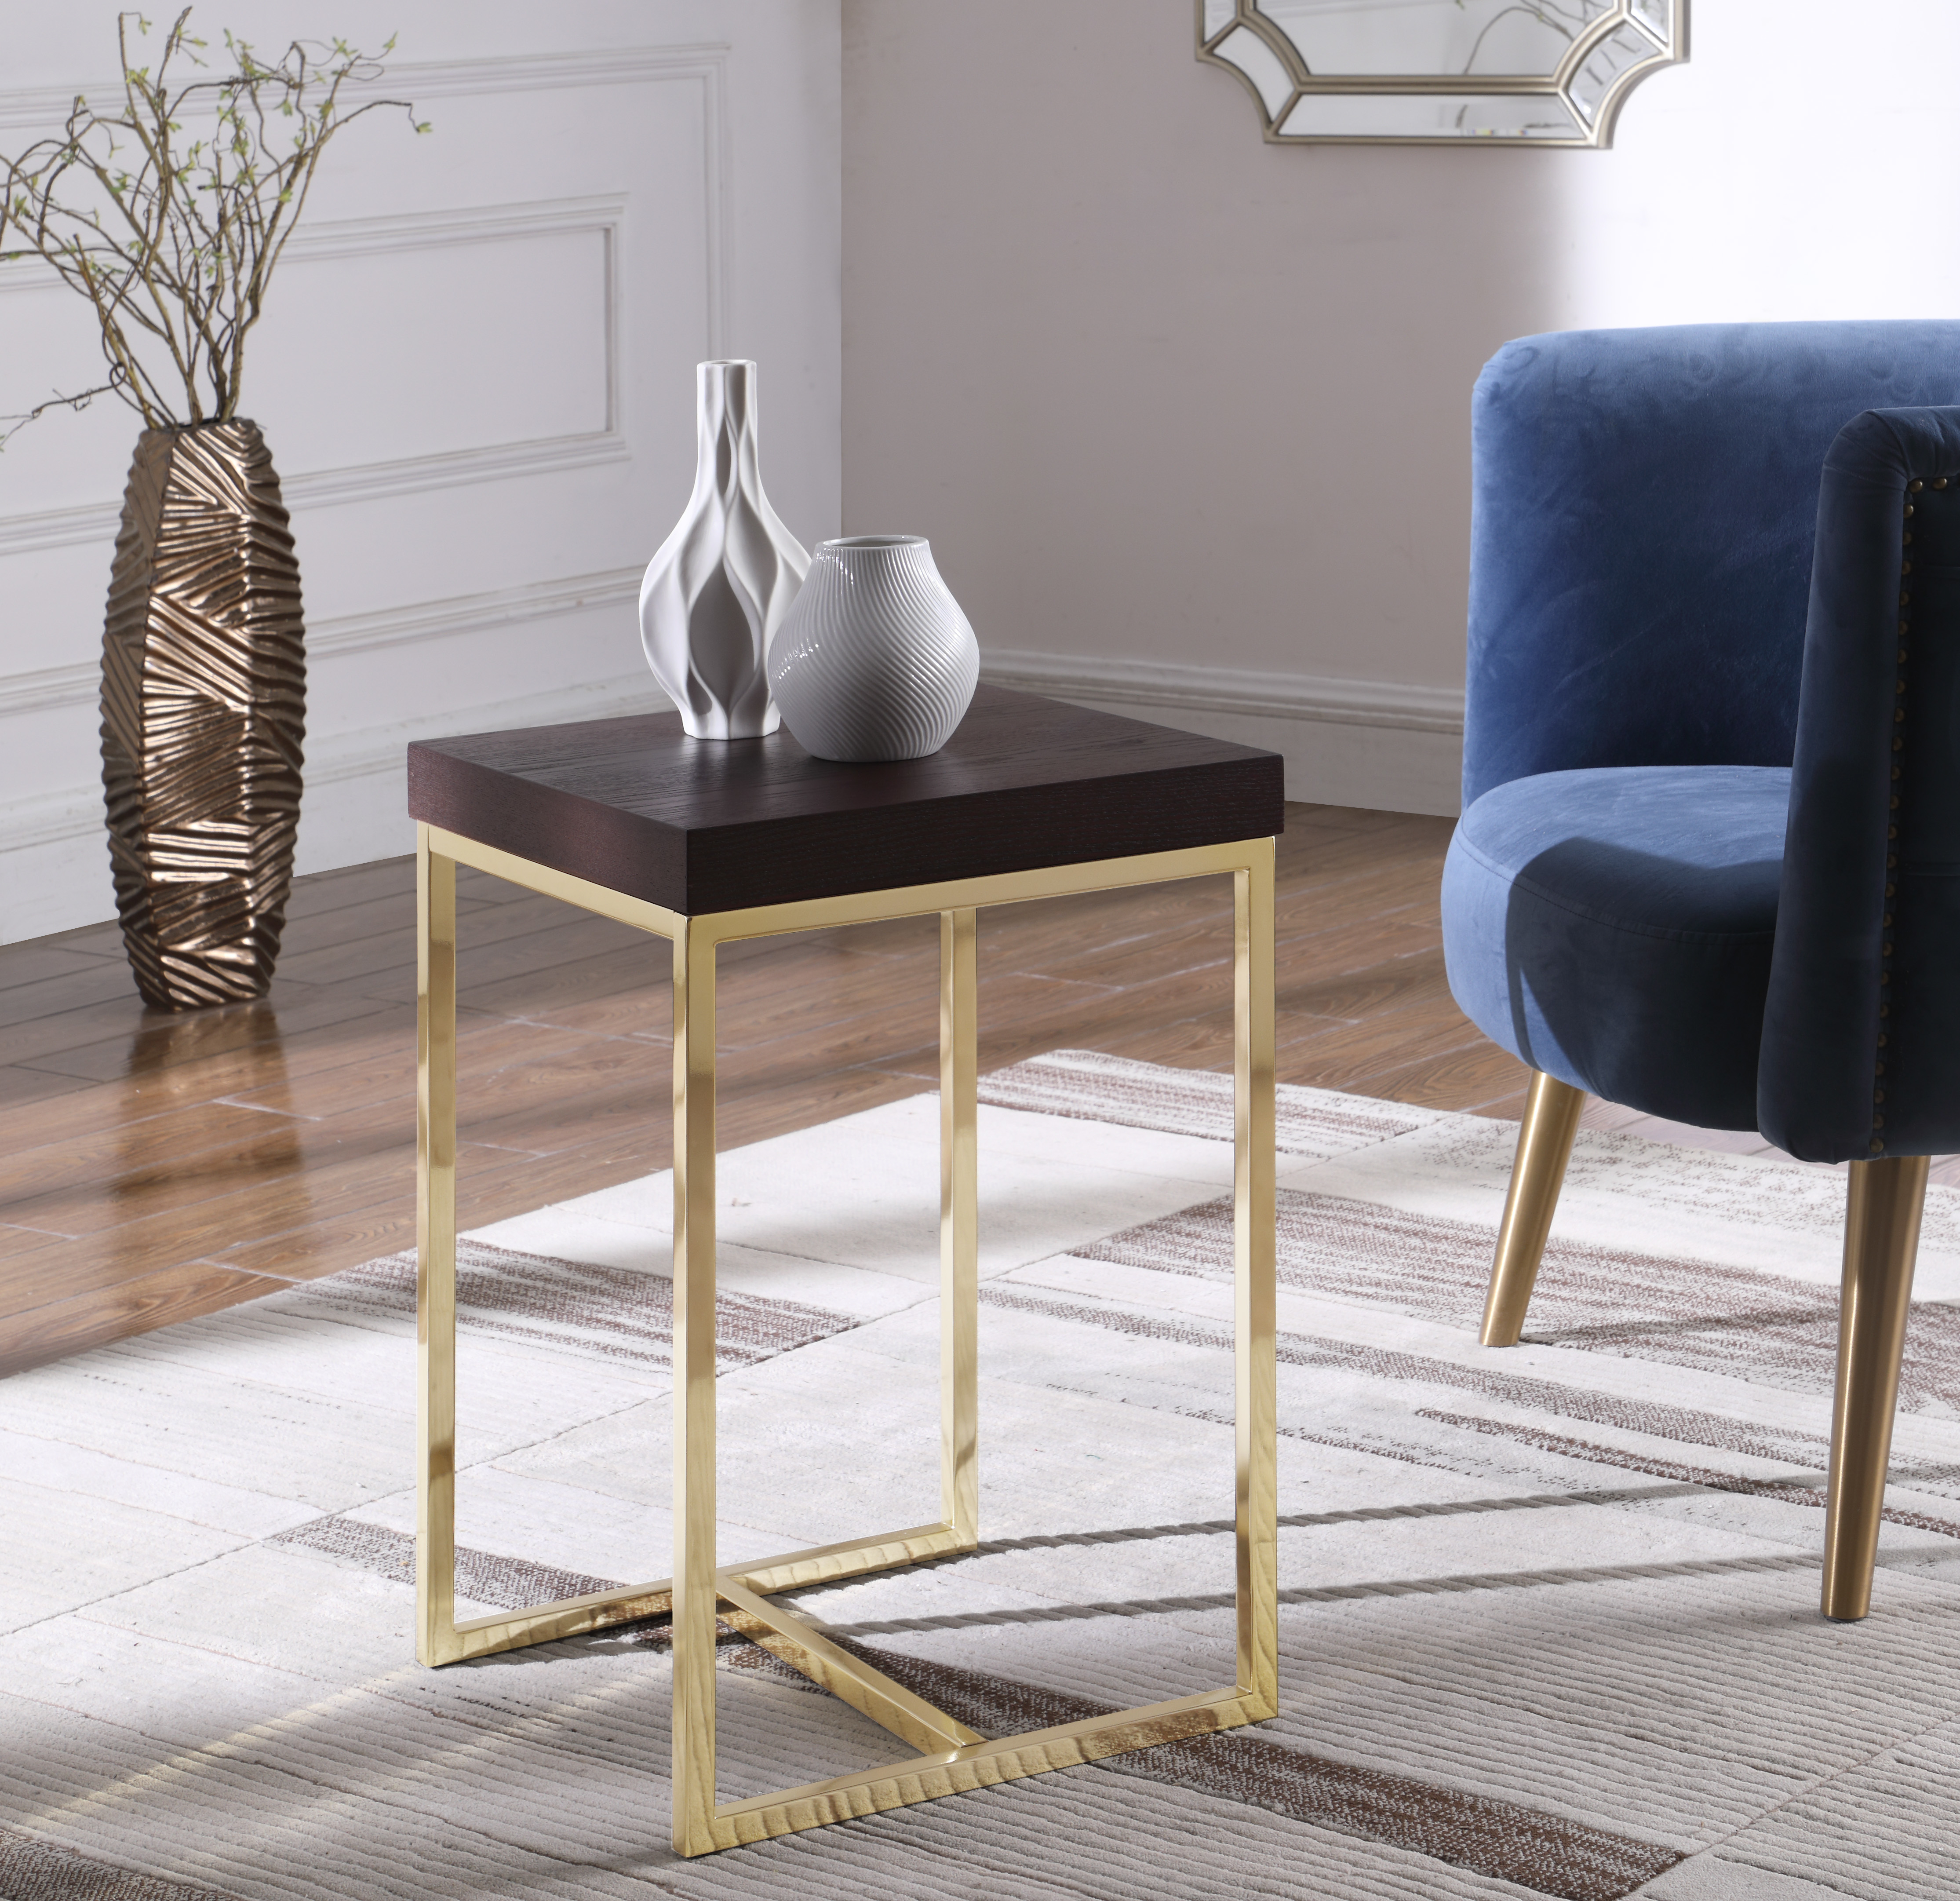 Ronel Nightstand Side Table with Ash Veneer Top Brass Brushed Stainless Steel Base - Espresso